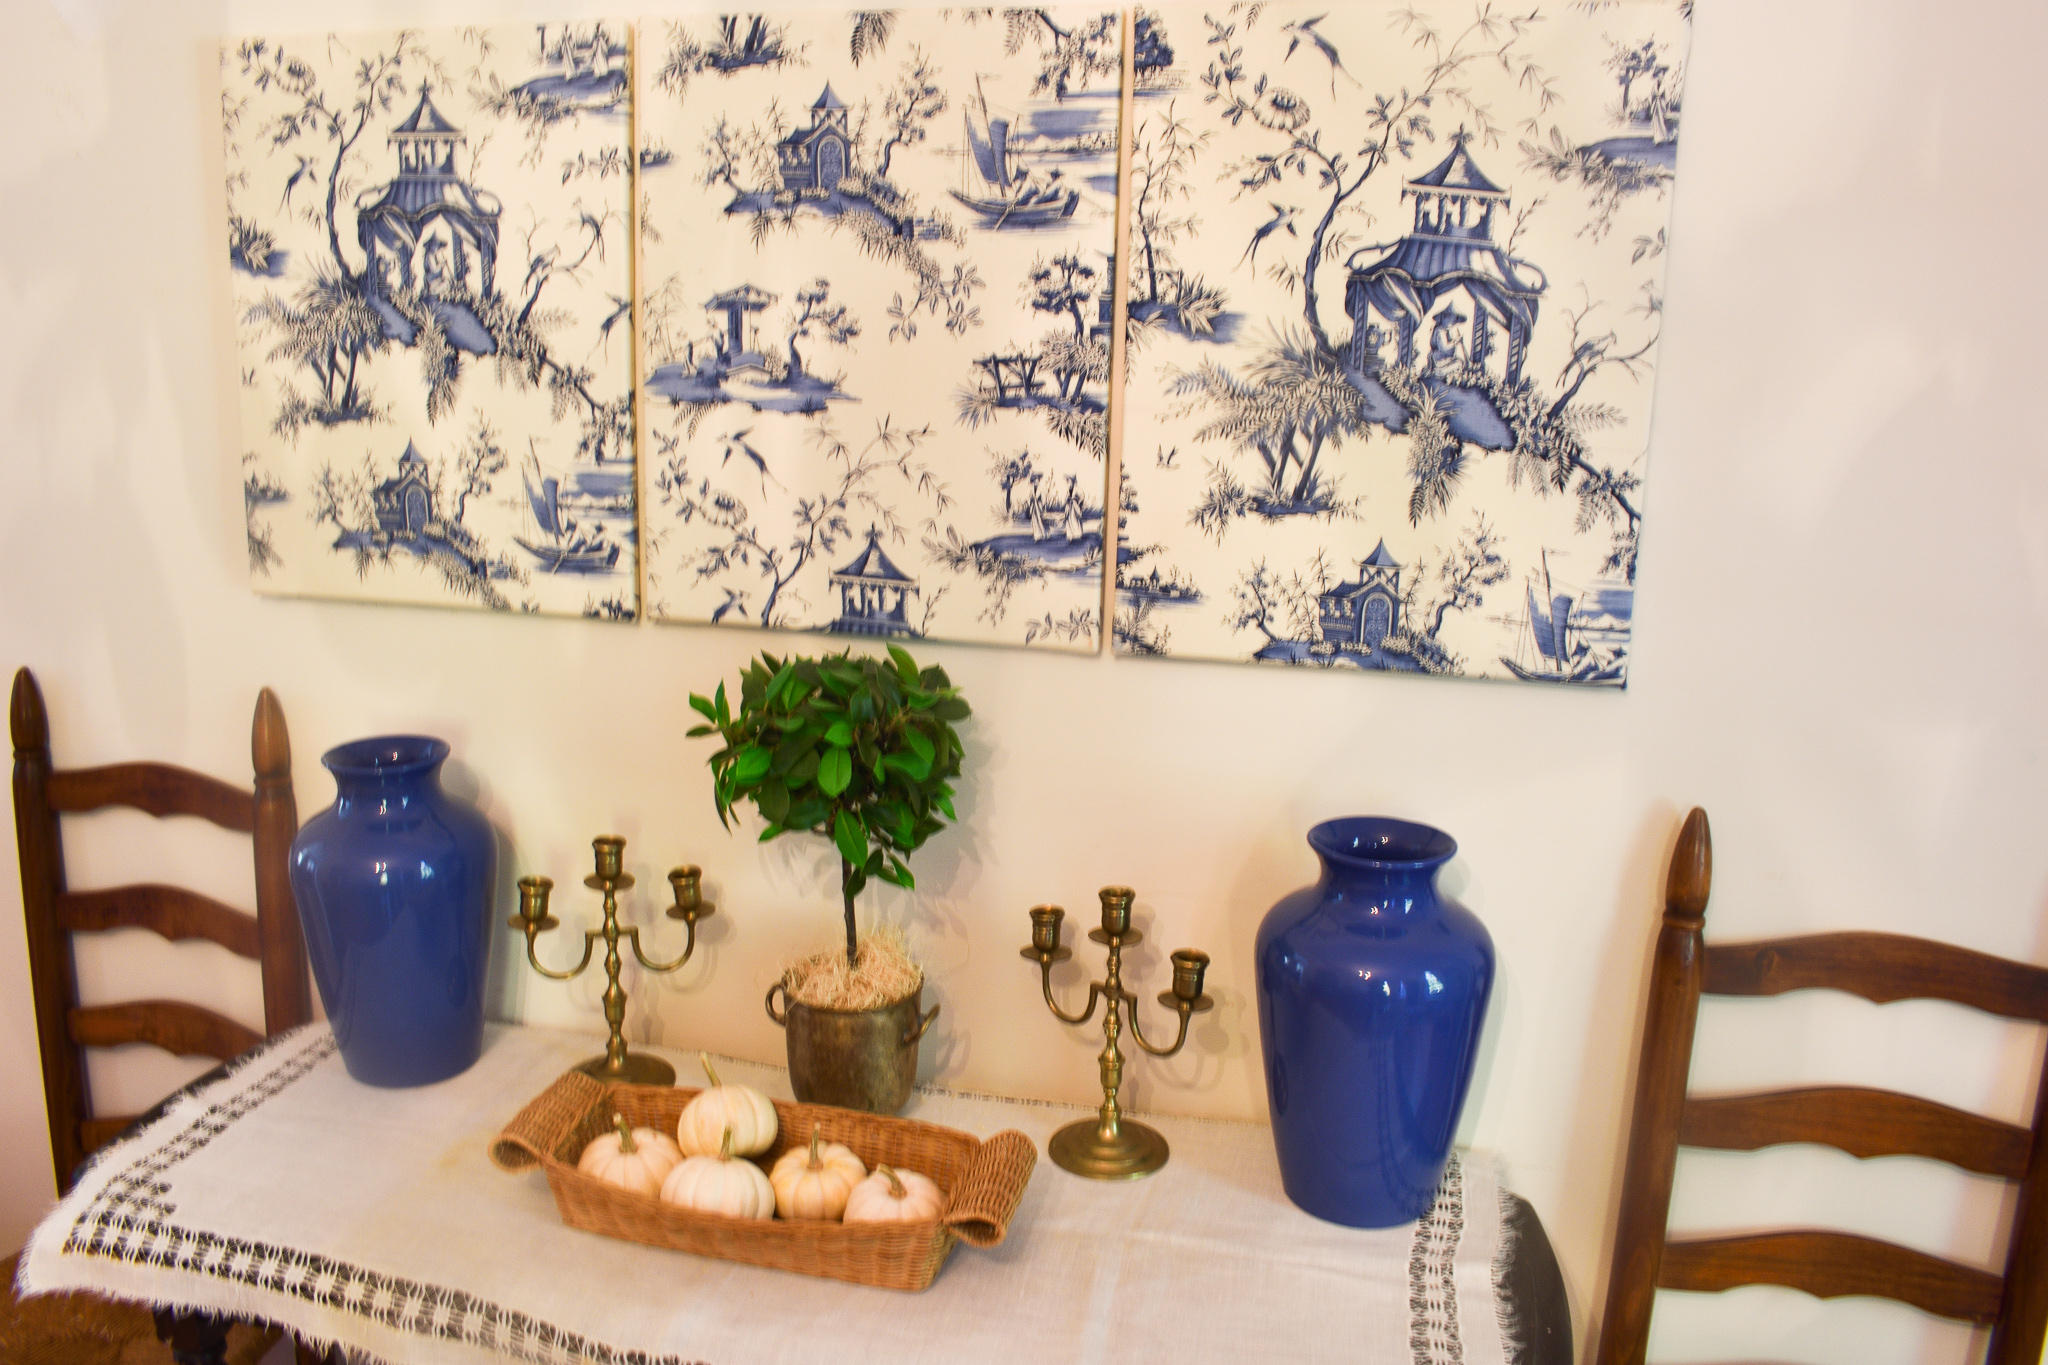 Blue and white toile fabric canvas wall art displayed above a console table